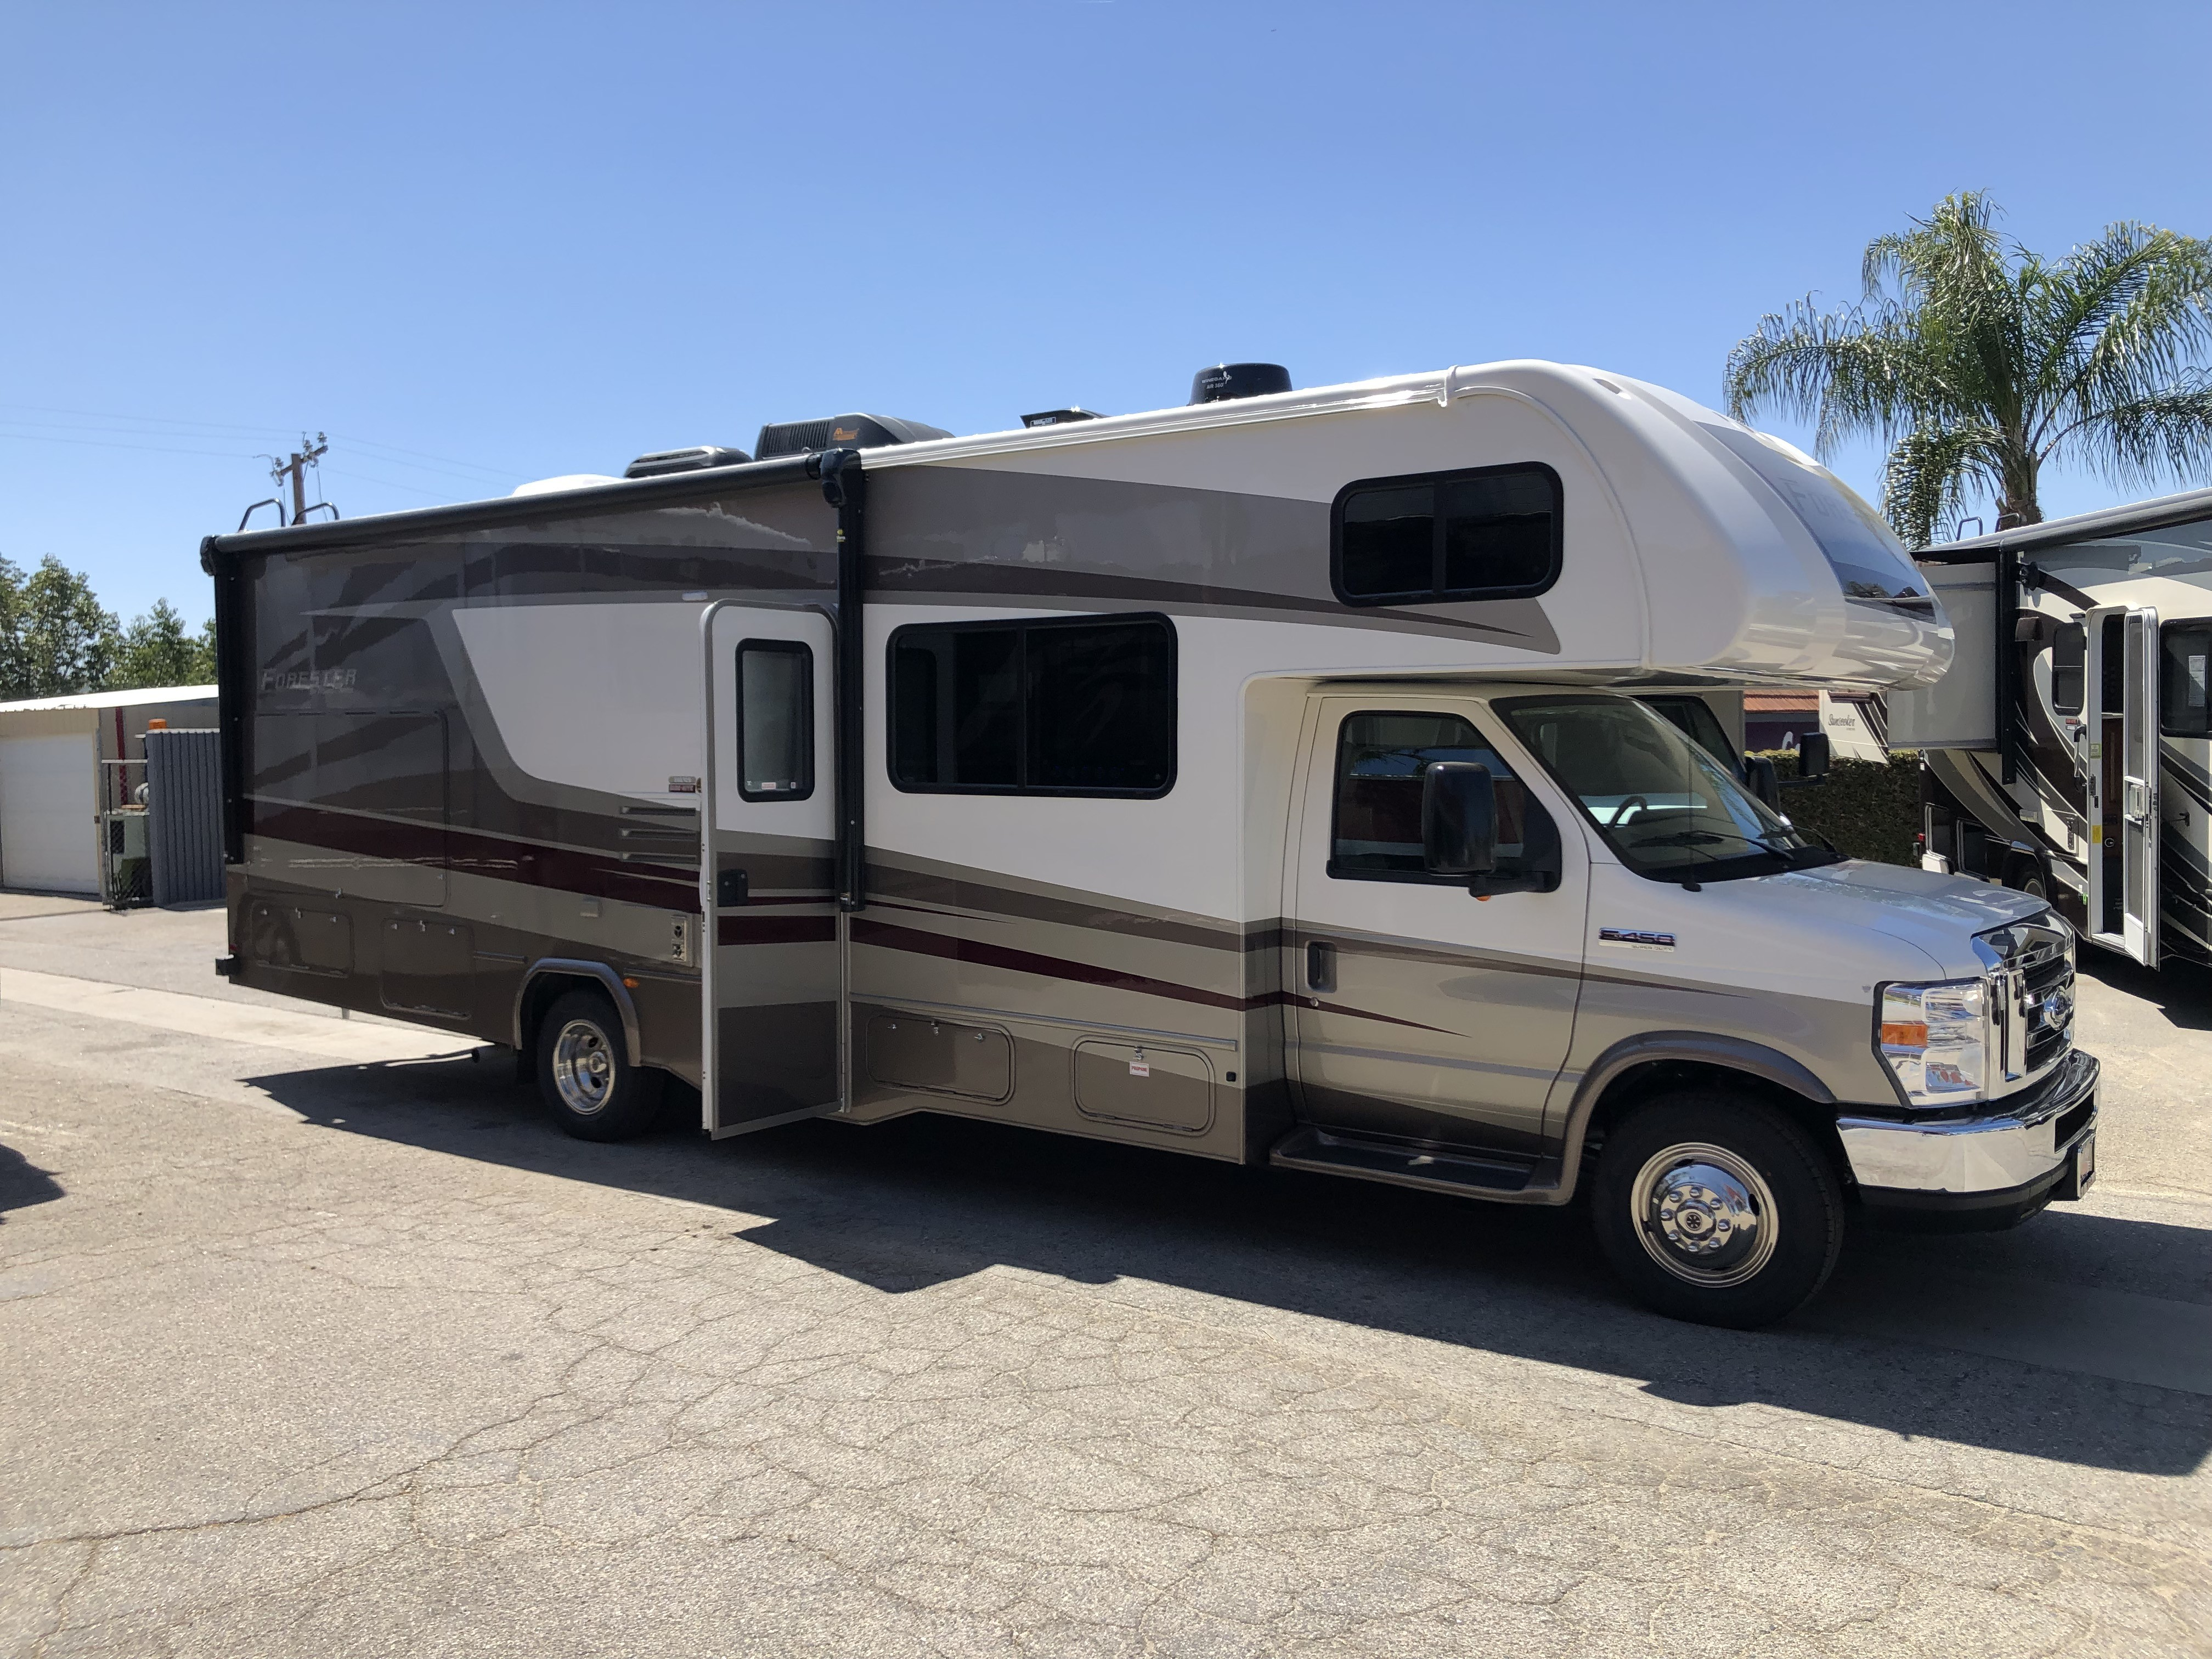 California RV Dealer | New & Used RV Sales, Parts, & Service